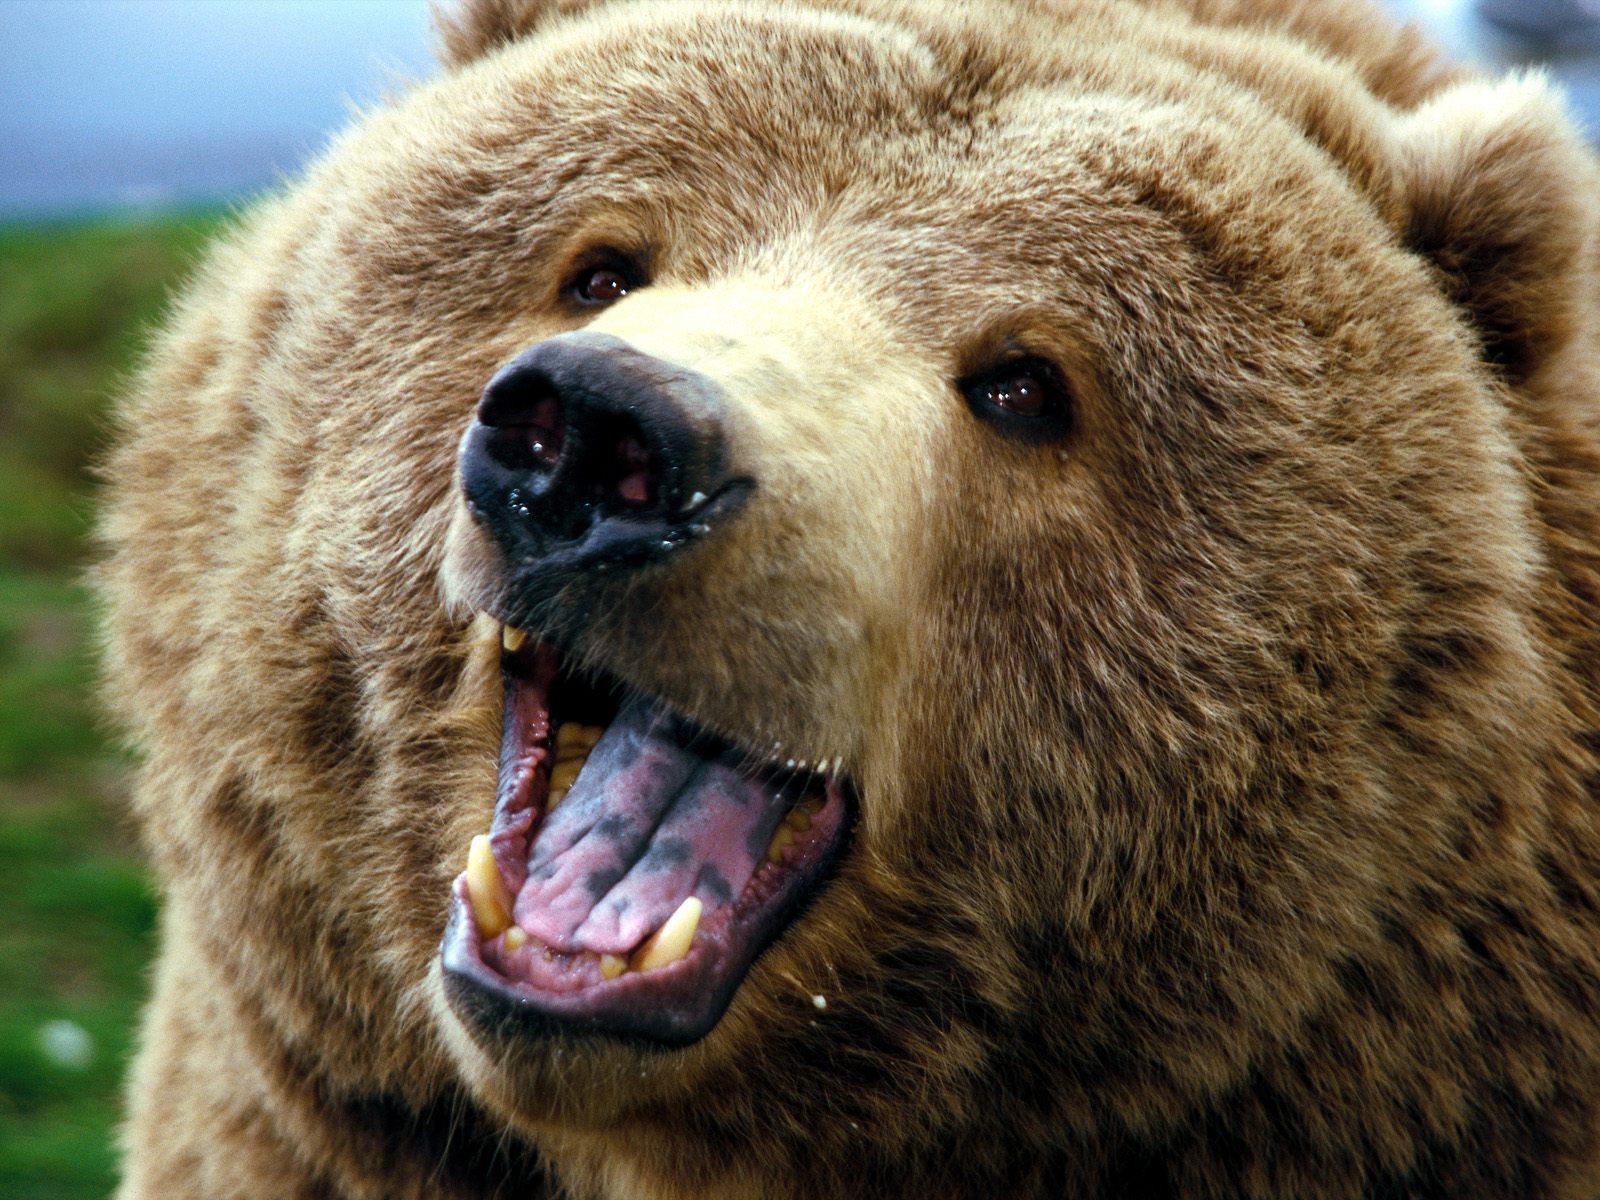 Grizzly-bear-I-like-him-he-seems-like-hes-smiling-Grizzly-bears-are-awesomely-powerful-intellig-wallpaper-wpc5805603